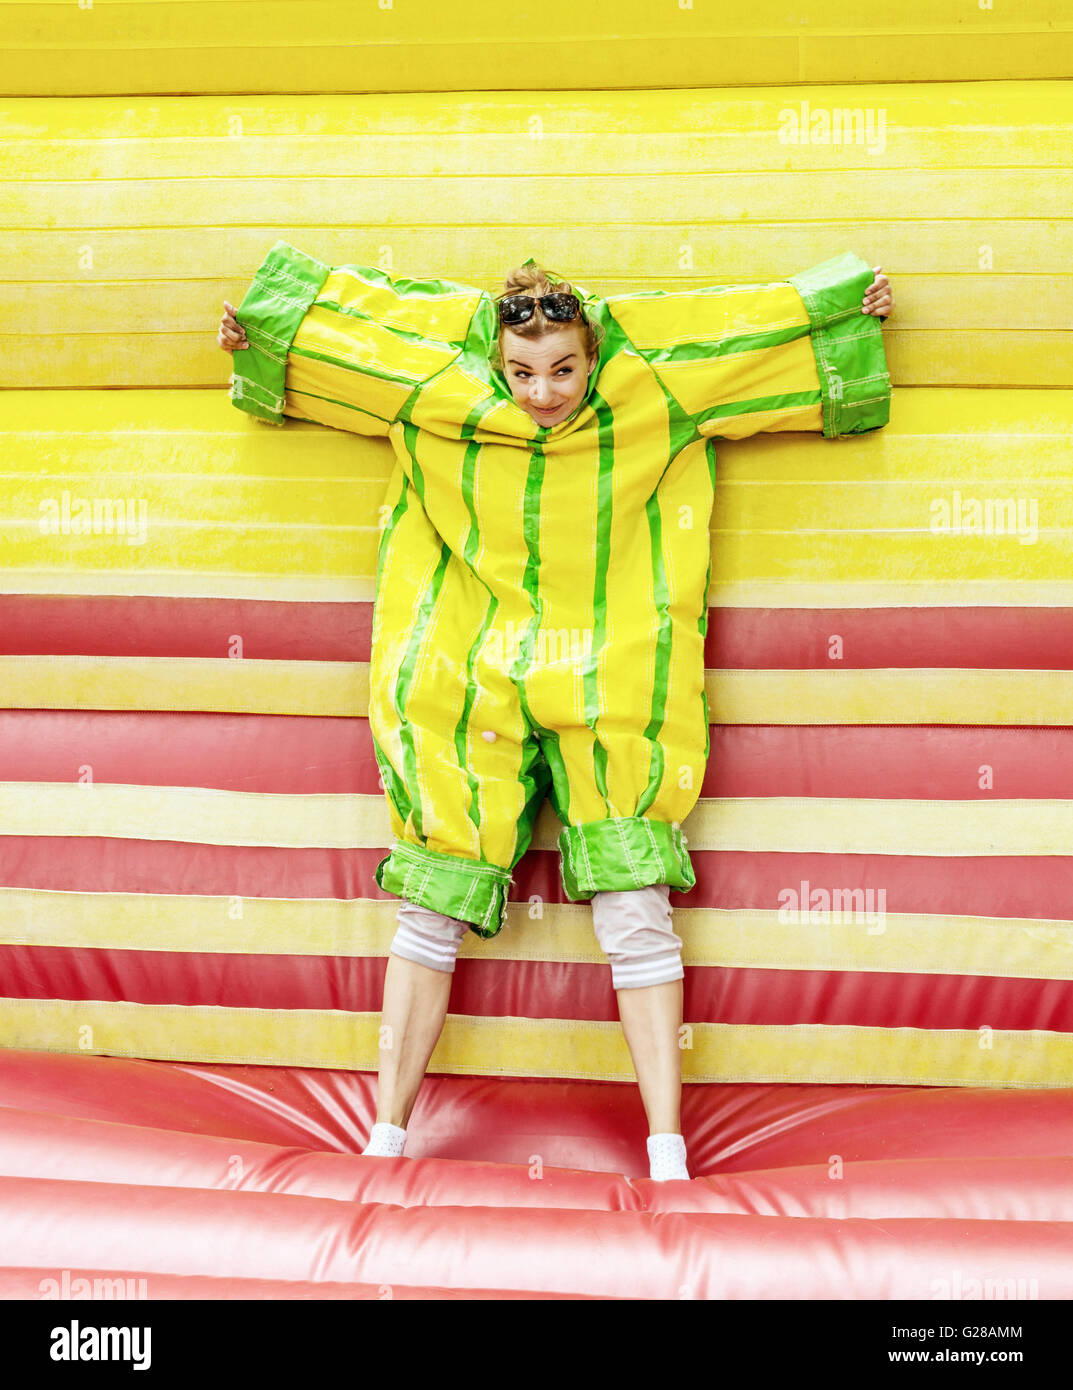 Joyful young caucasian woman in plastic dress in a bouncy castle imitates a fly on velcro wall. Inflatable attraction. - Stock Image